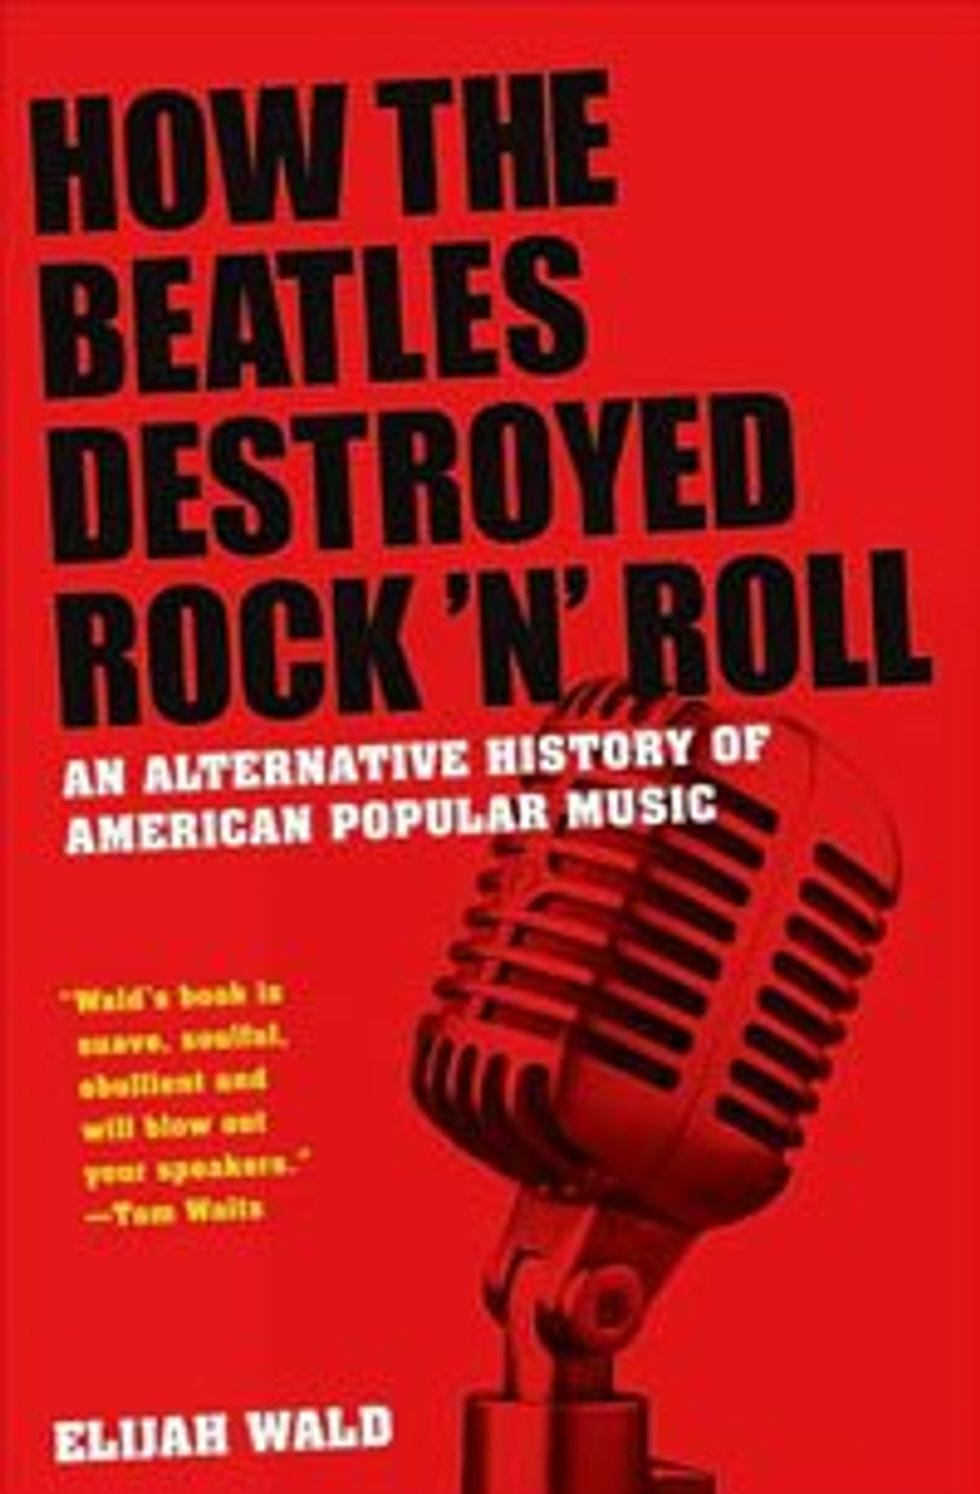 How the Beatles Destroyed Rock 'n' Roll by Elijah Wald - PopMatters